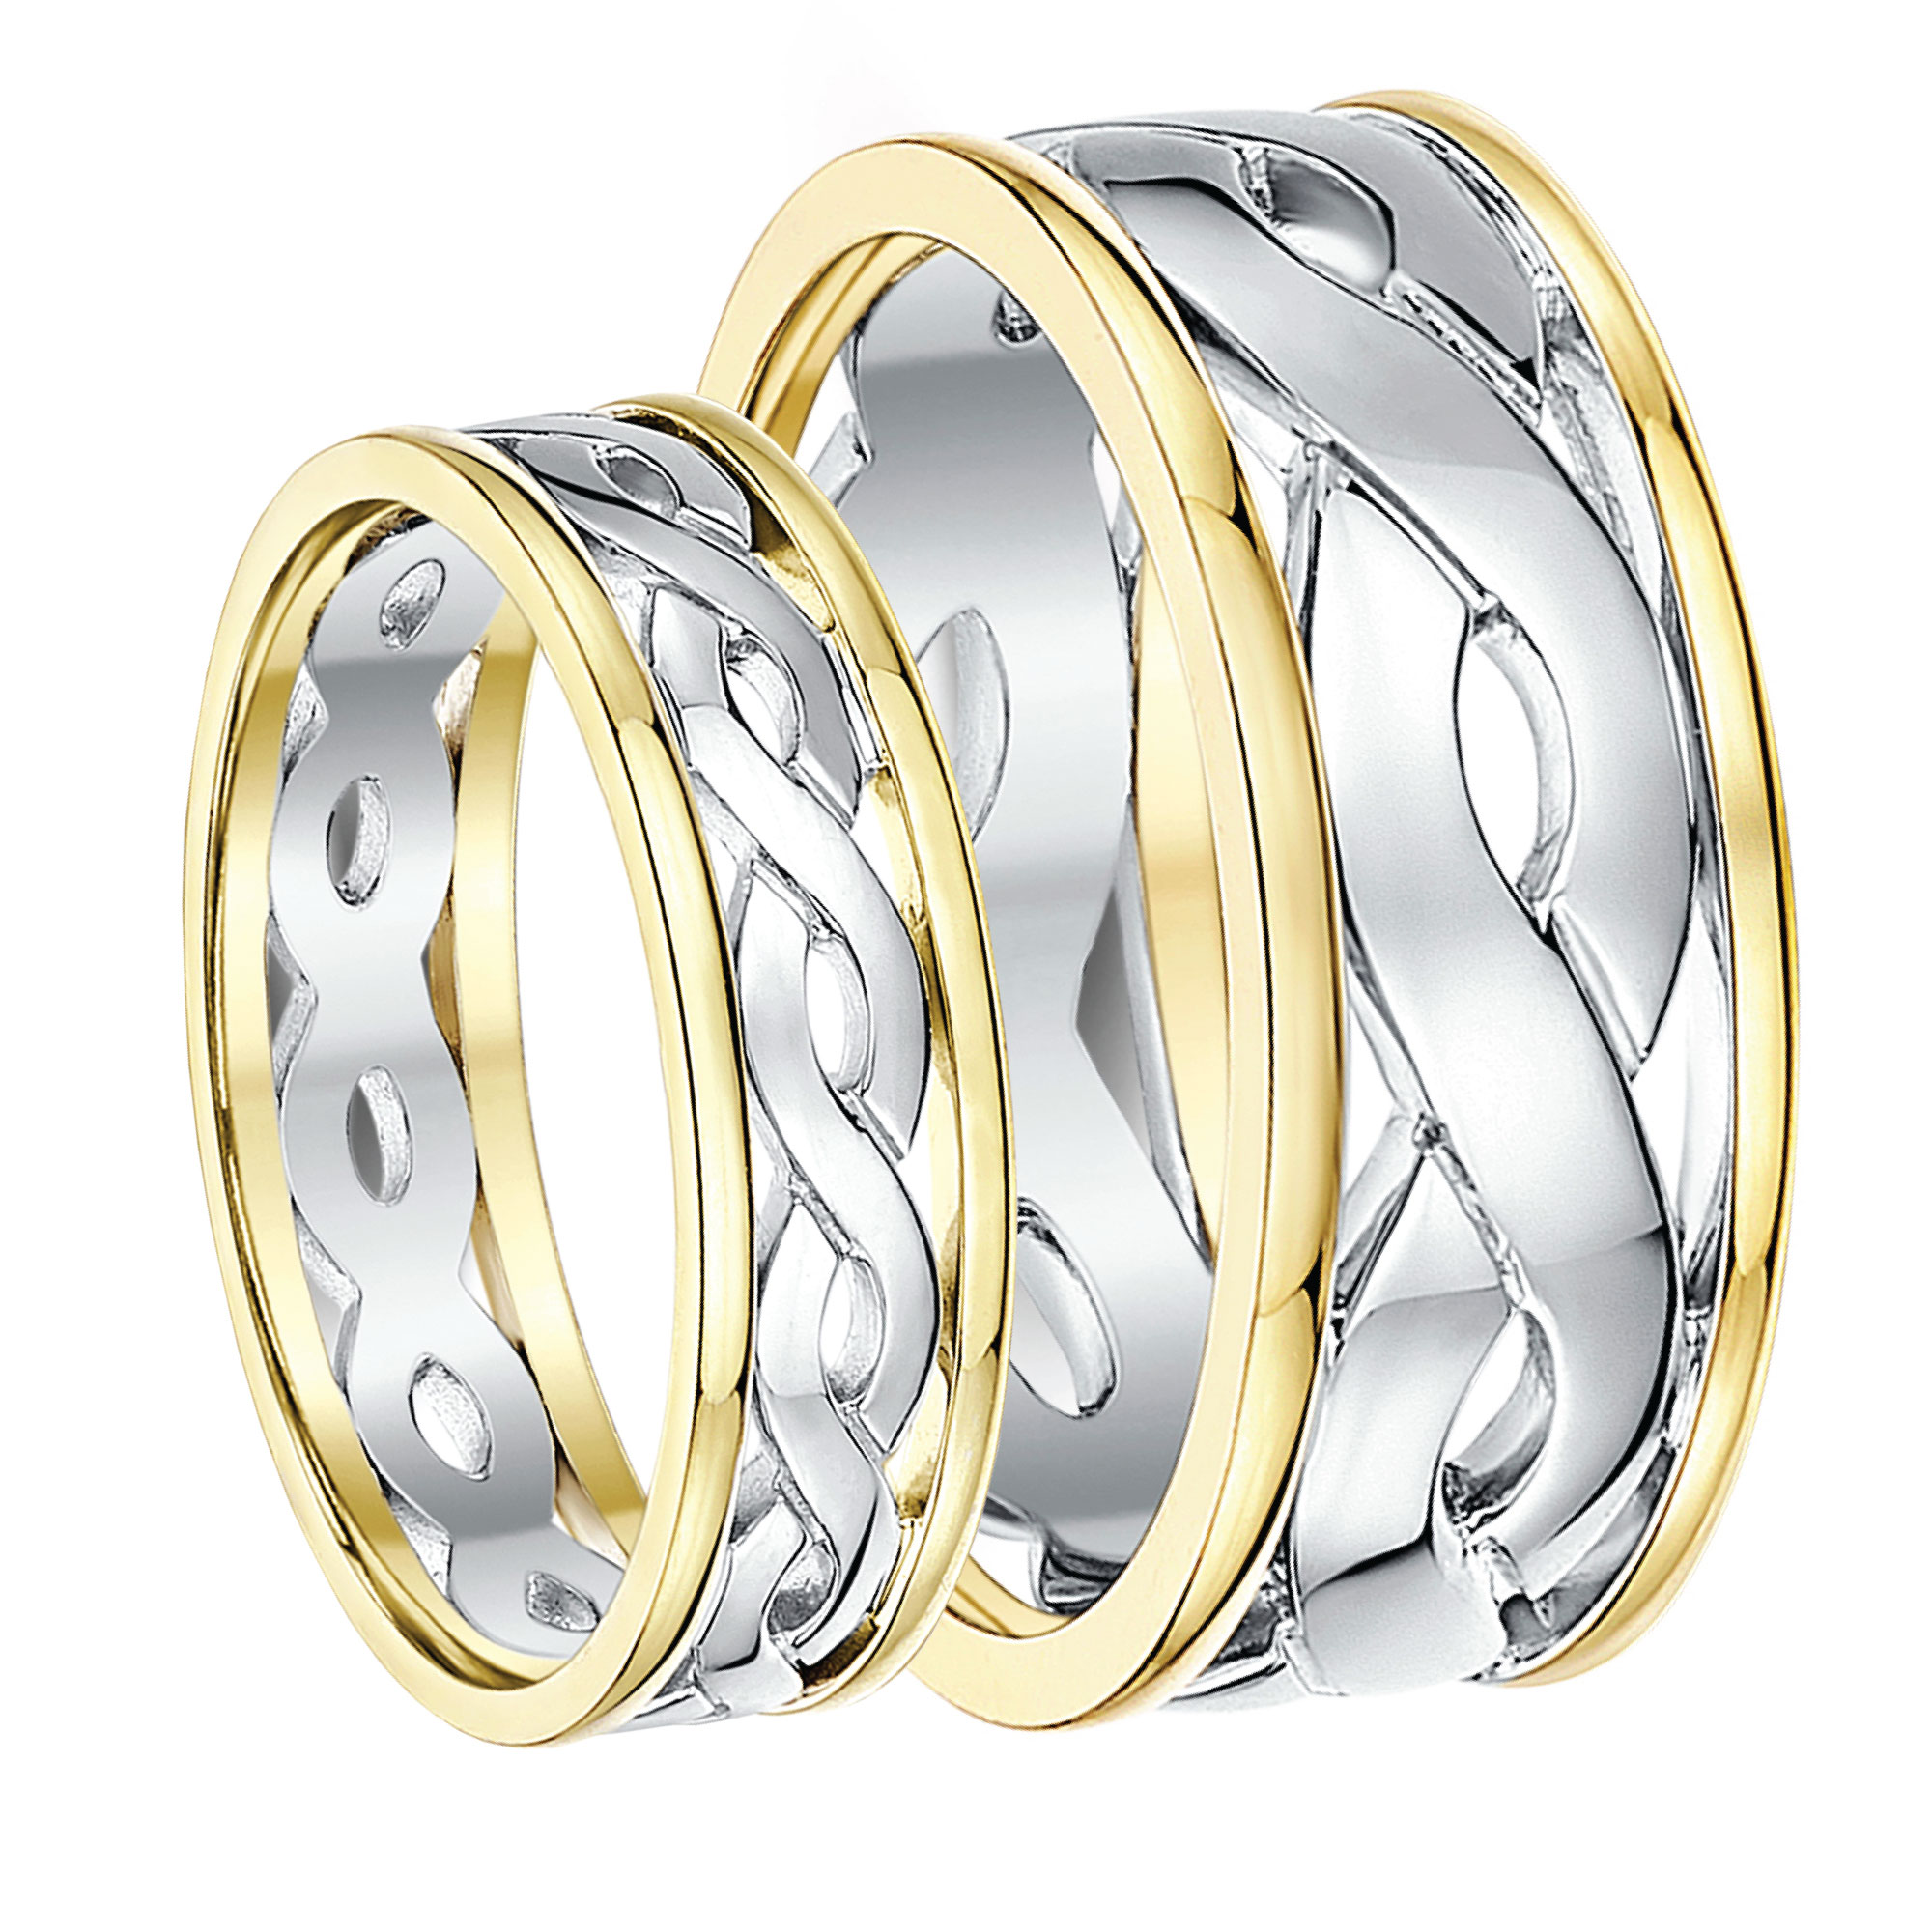 Unique Celtic Wedding Rings and Gaelic Engagement and Wedding Bands